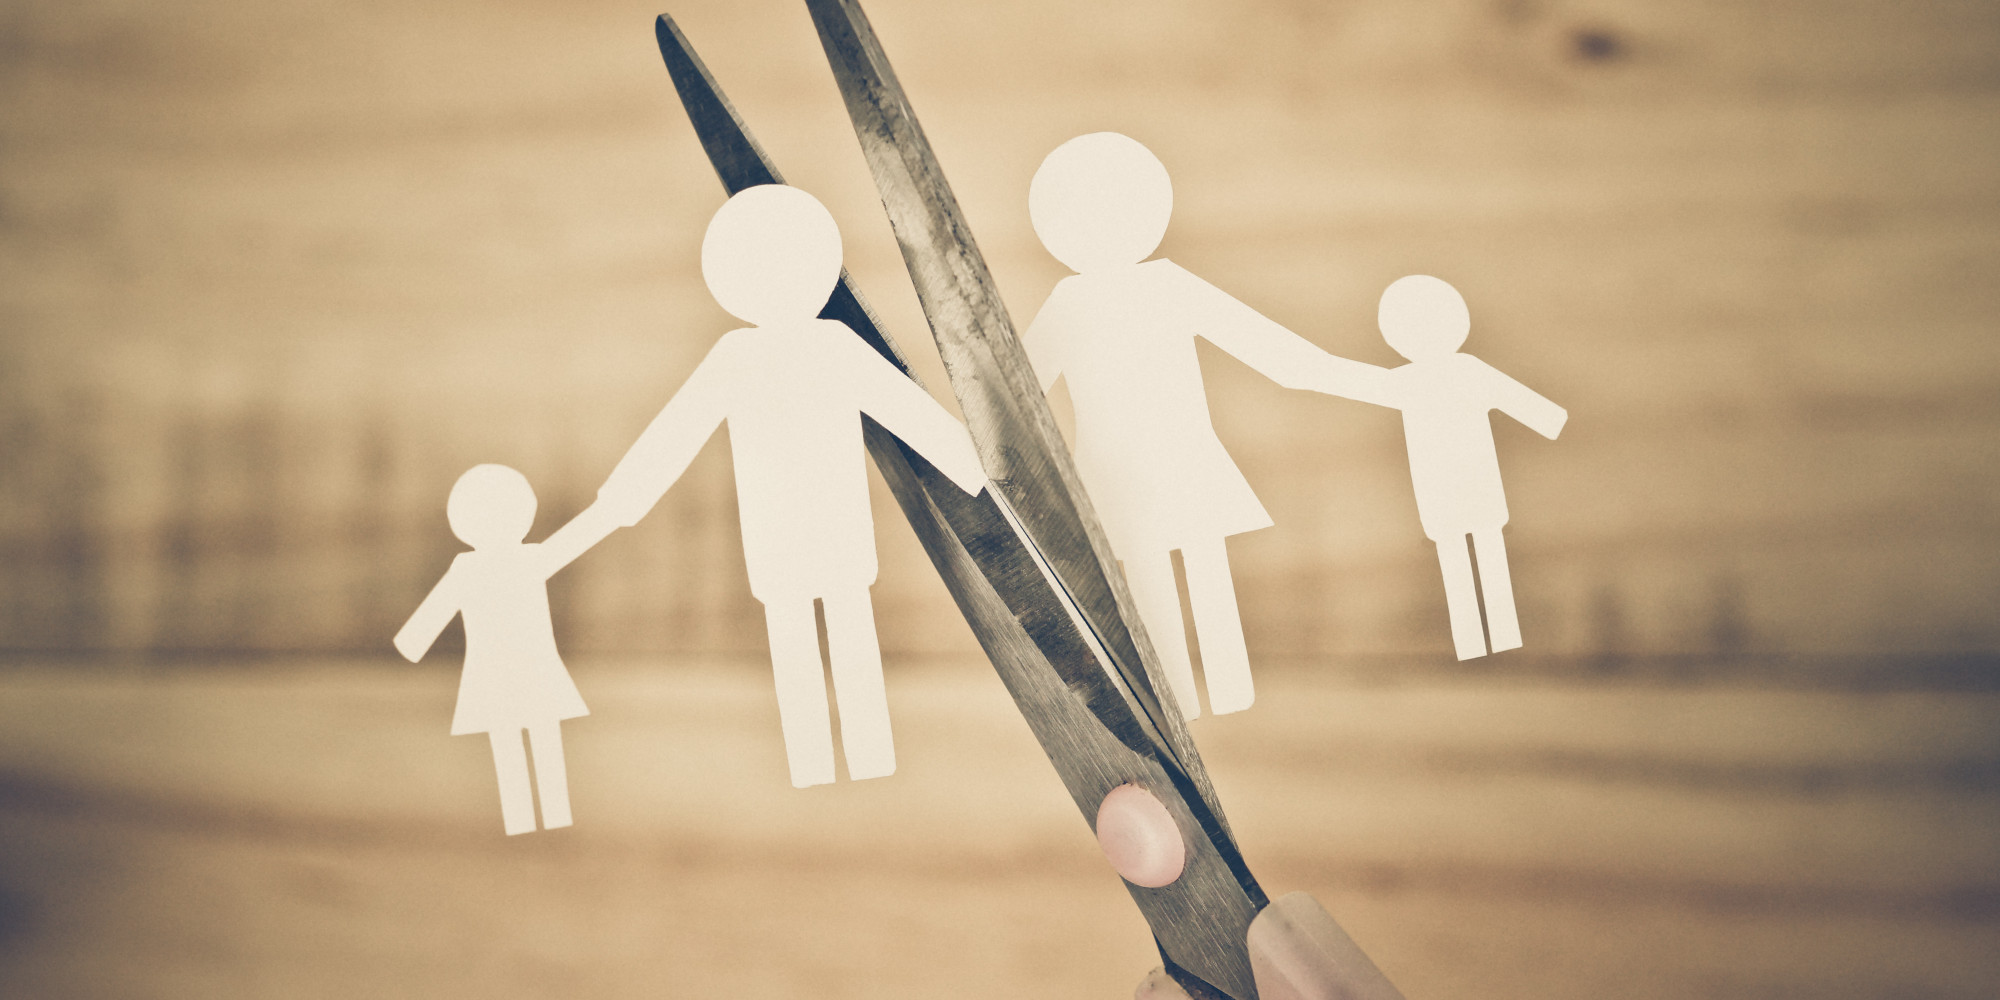 Divorce Law Peoria II - Offers Financial Security And Stability